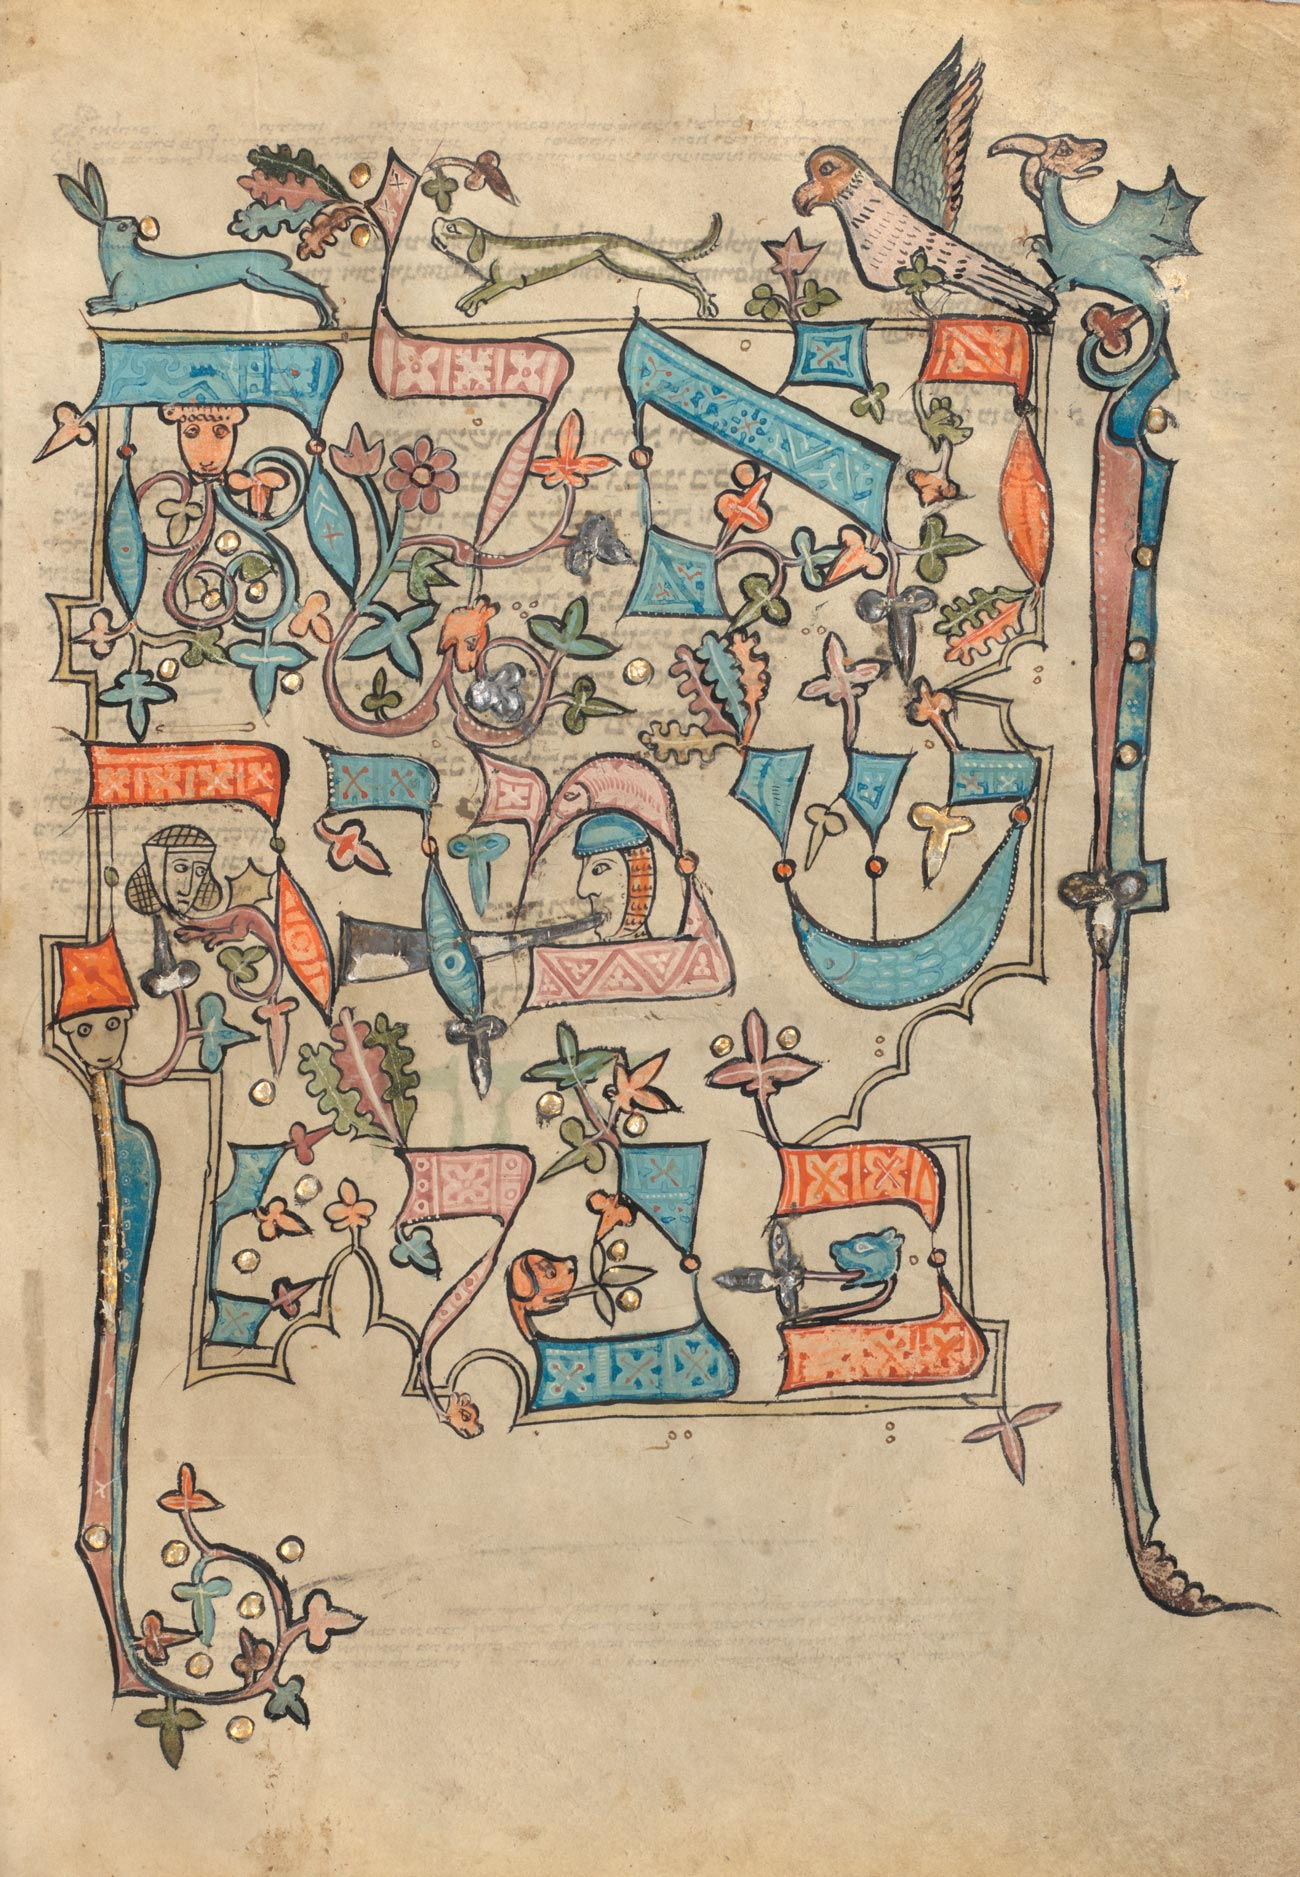 An illuminated manuscript with large Hebrew letters painted with bright colors and subtle patterns. Animals run across the top, flora grows between the letters with two human heads, one blowing a horn.